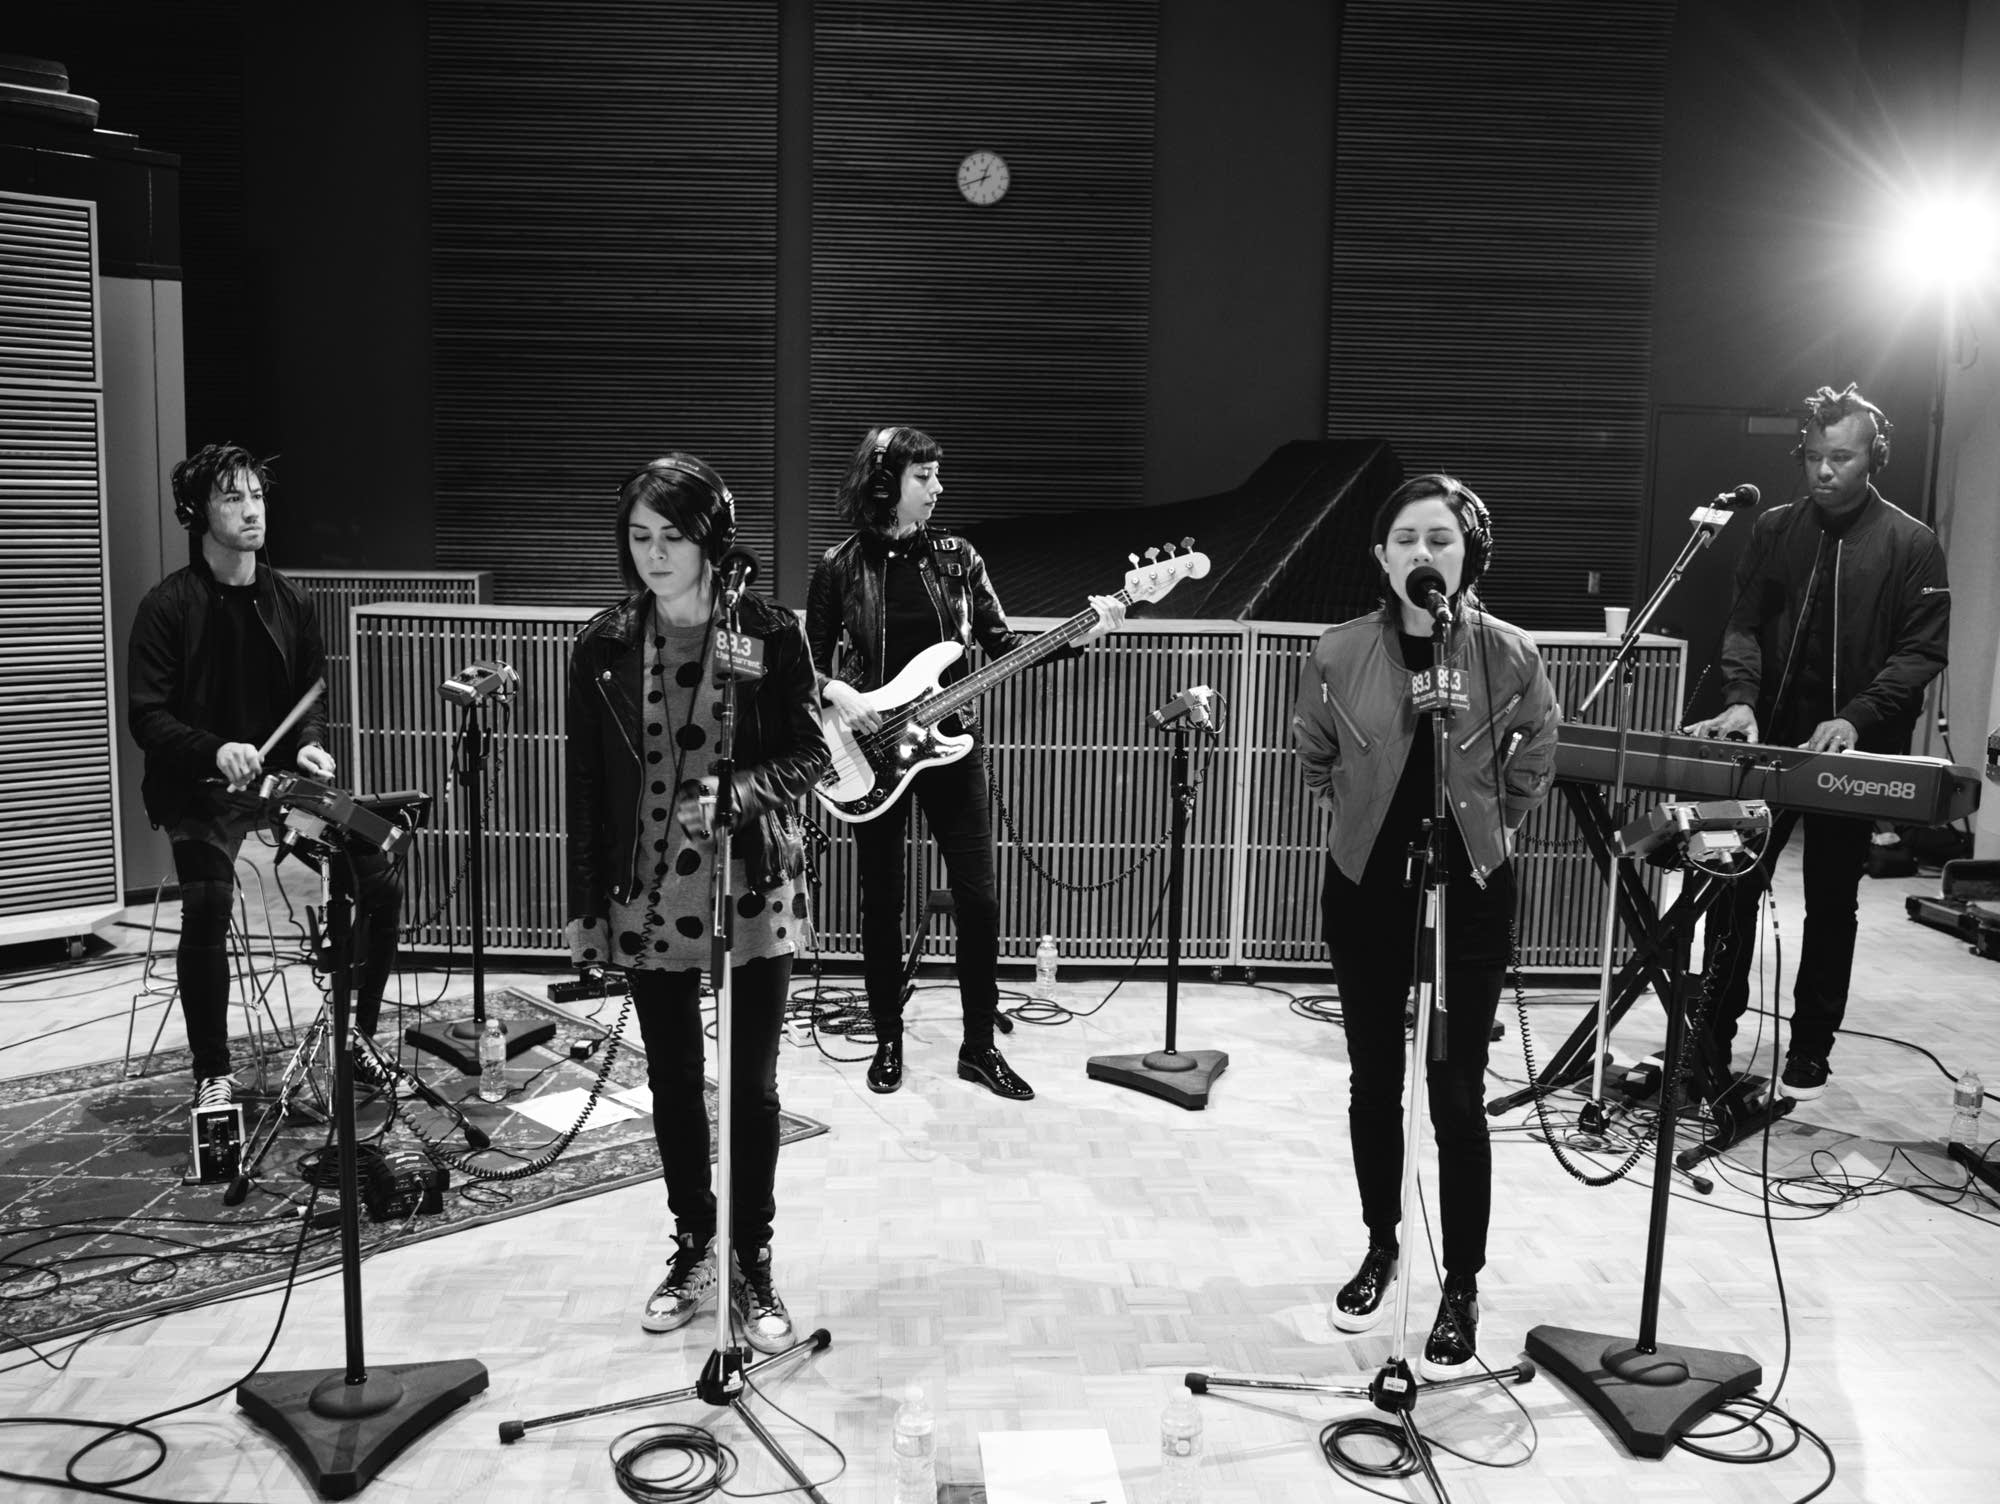 Tegan and Sara perform in The Current studio